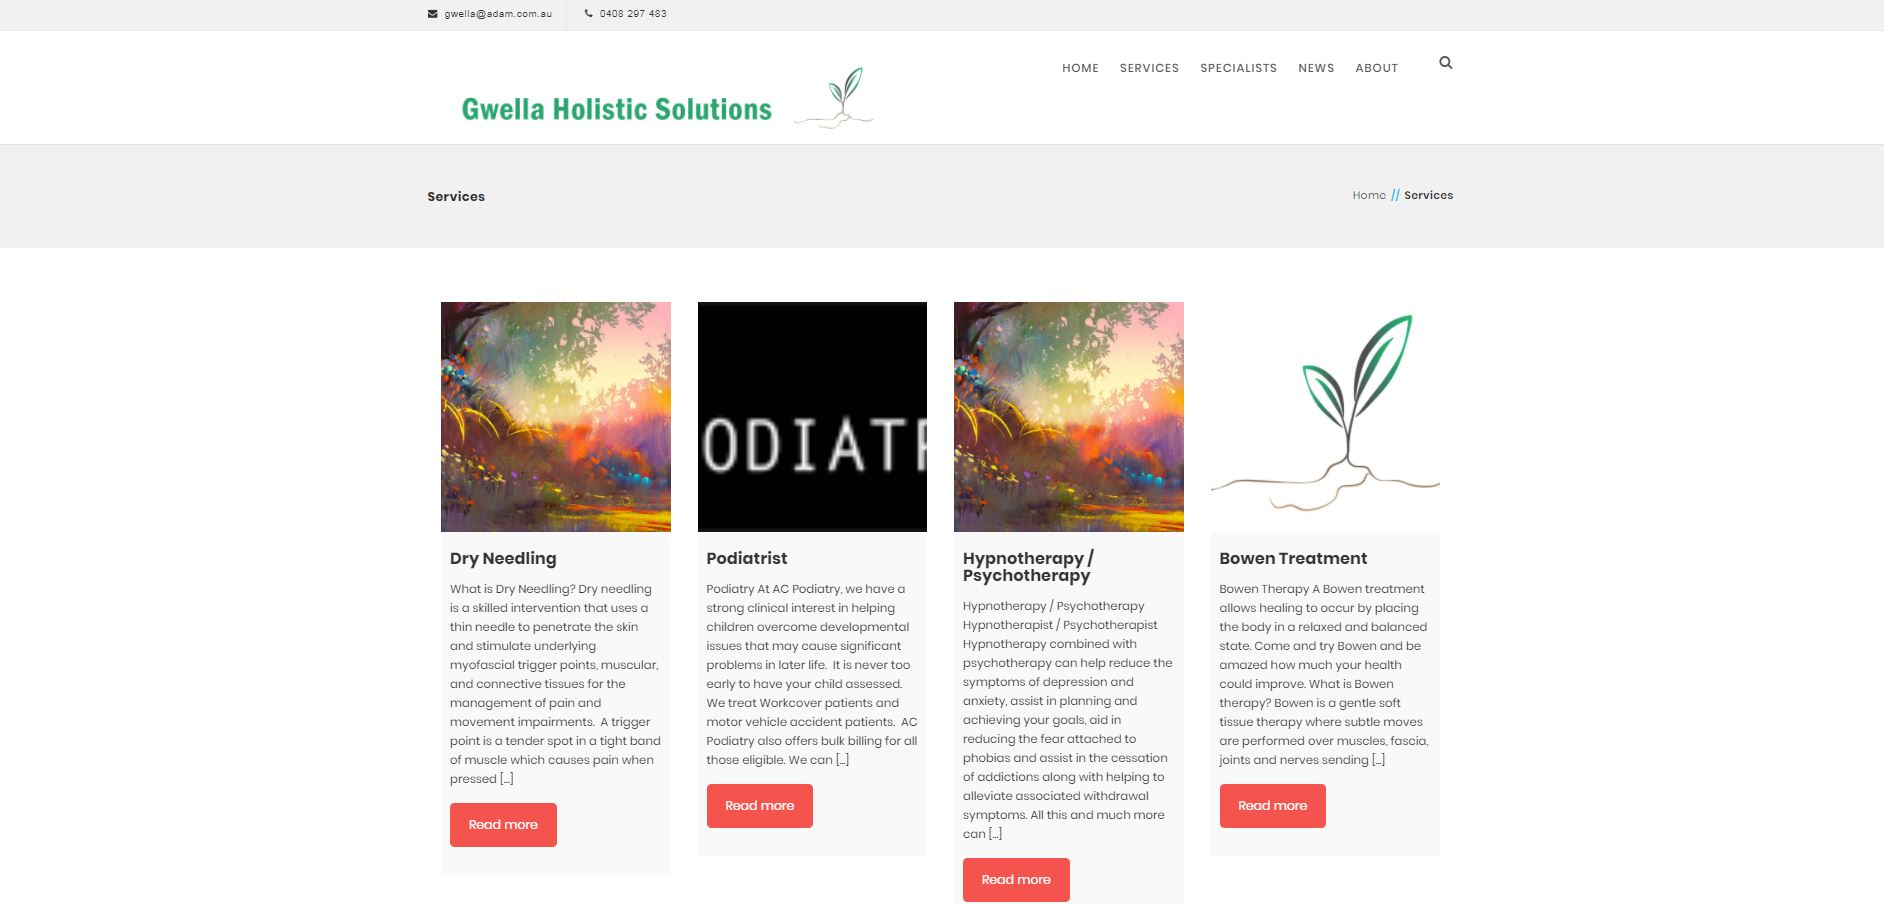 Gwella Holistic Solutions